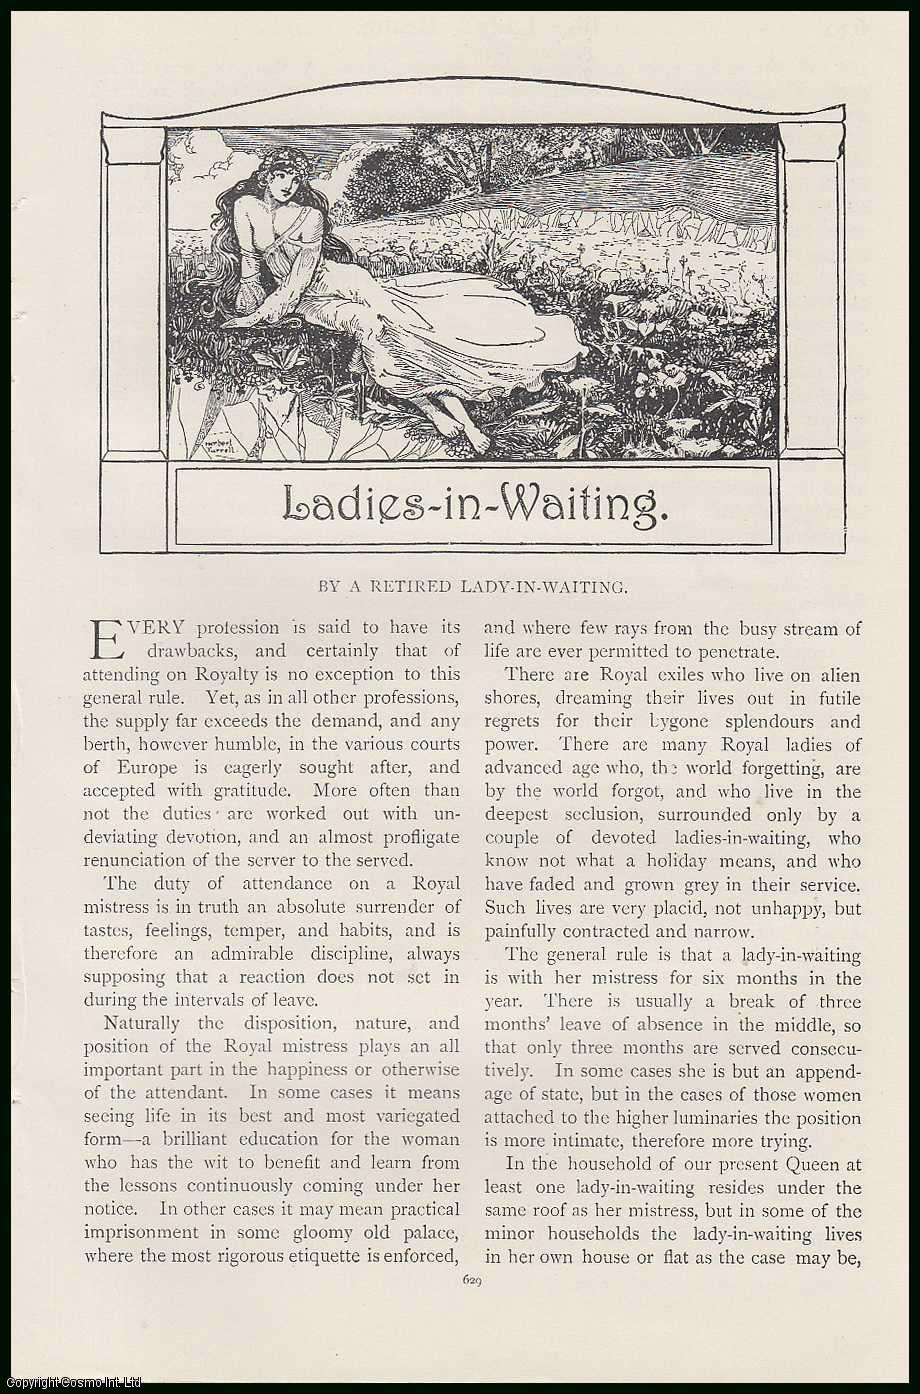 --- - Ladies in Waiting. An original article from the Lady's Realm 1906.